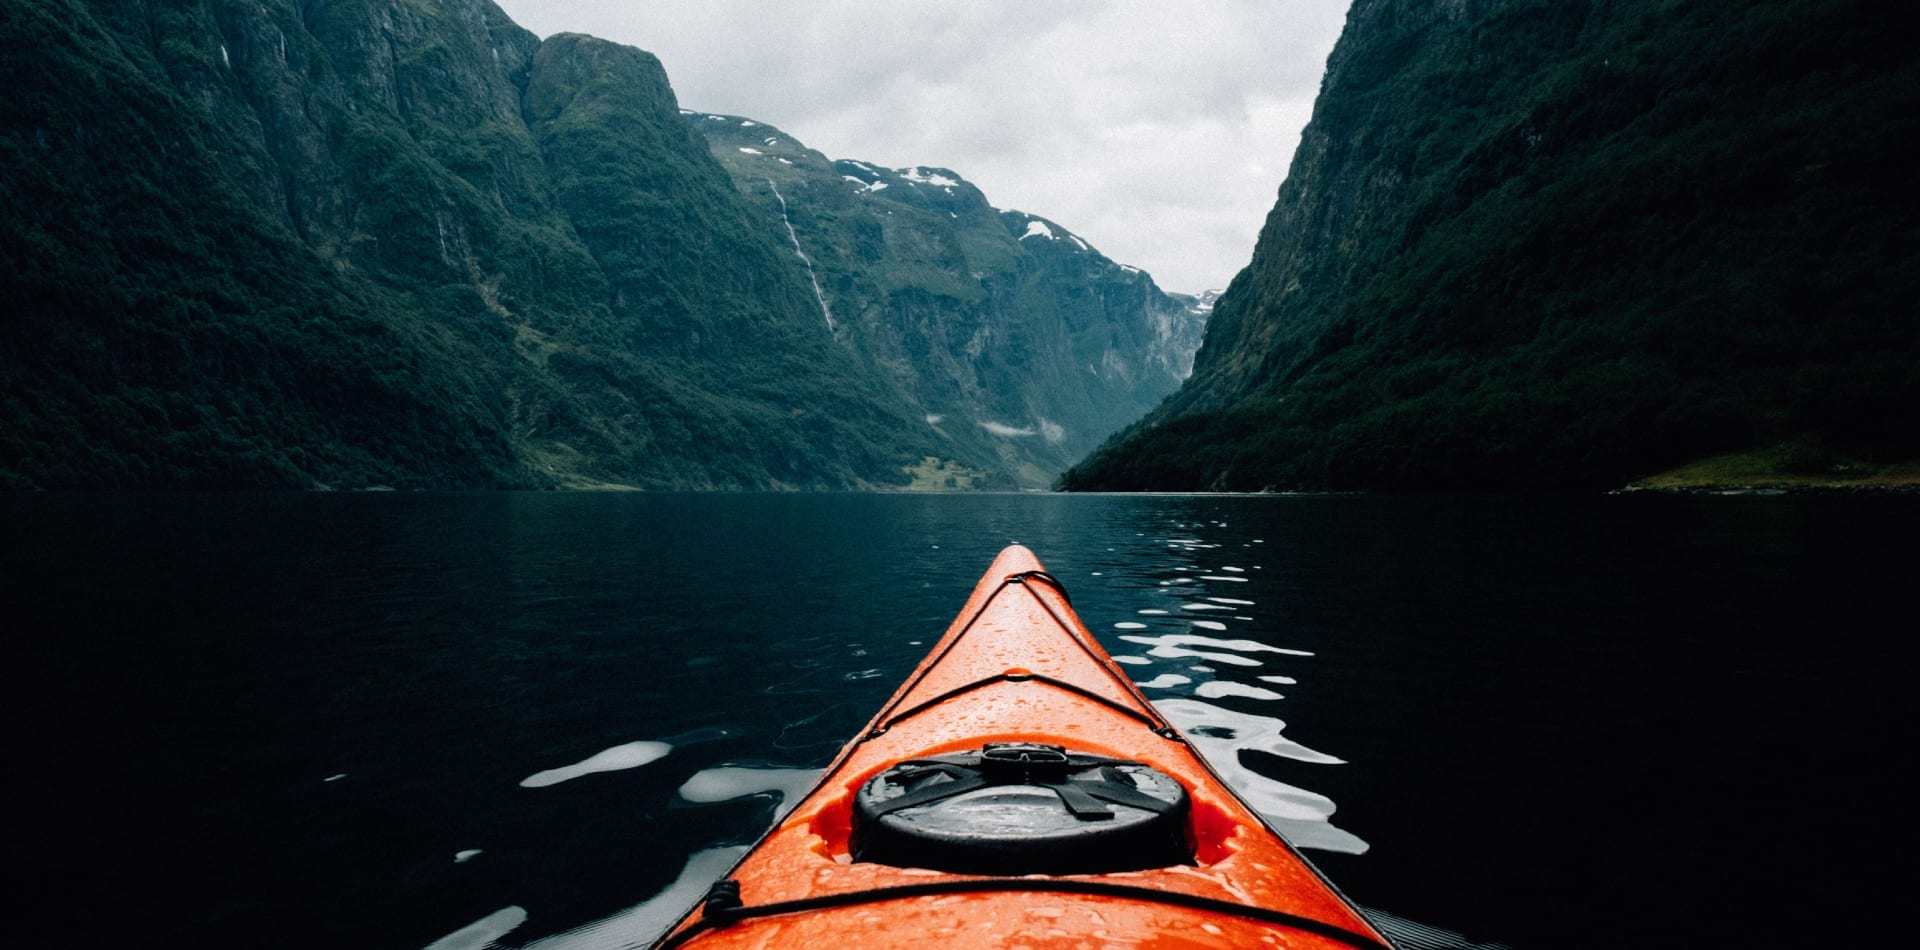 Kayaking in a fjord in Norway